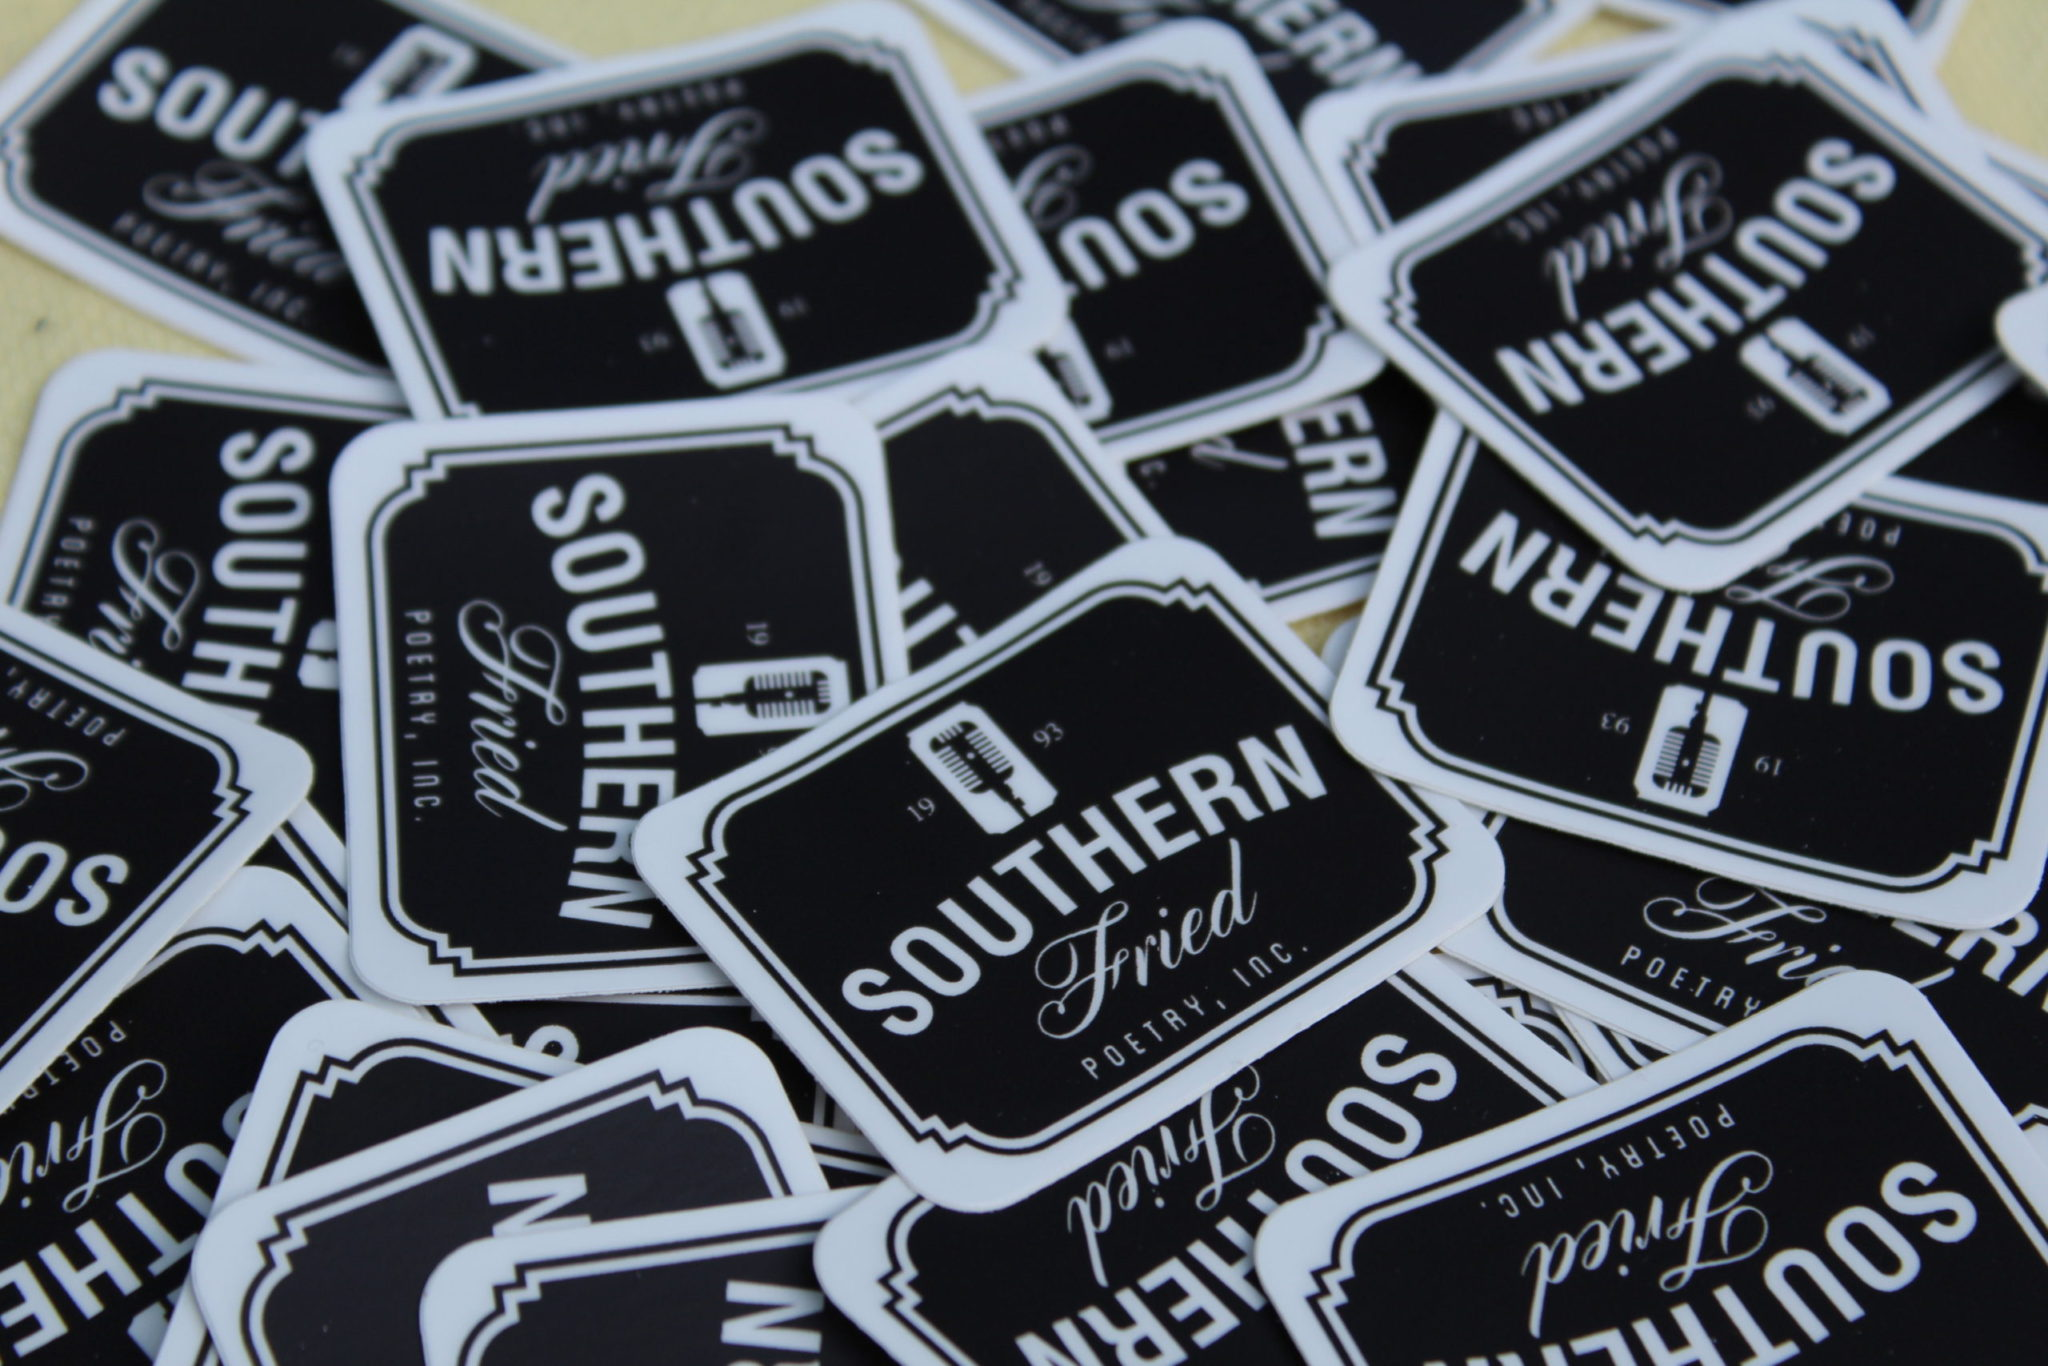 SoFried Poetry Stickers – 5 Pack